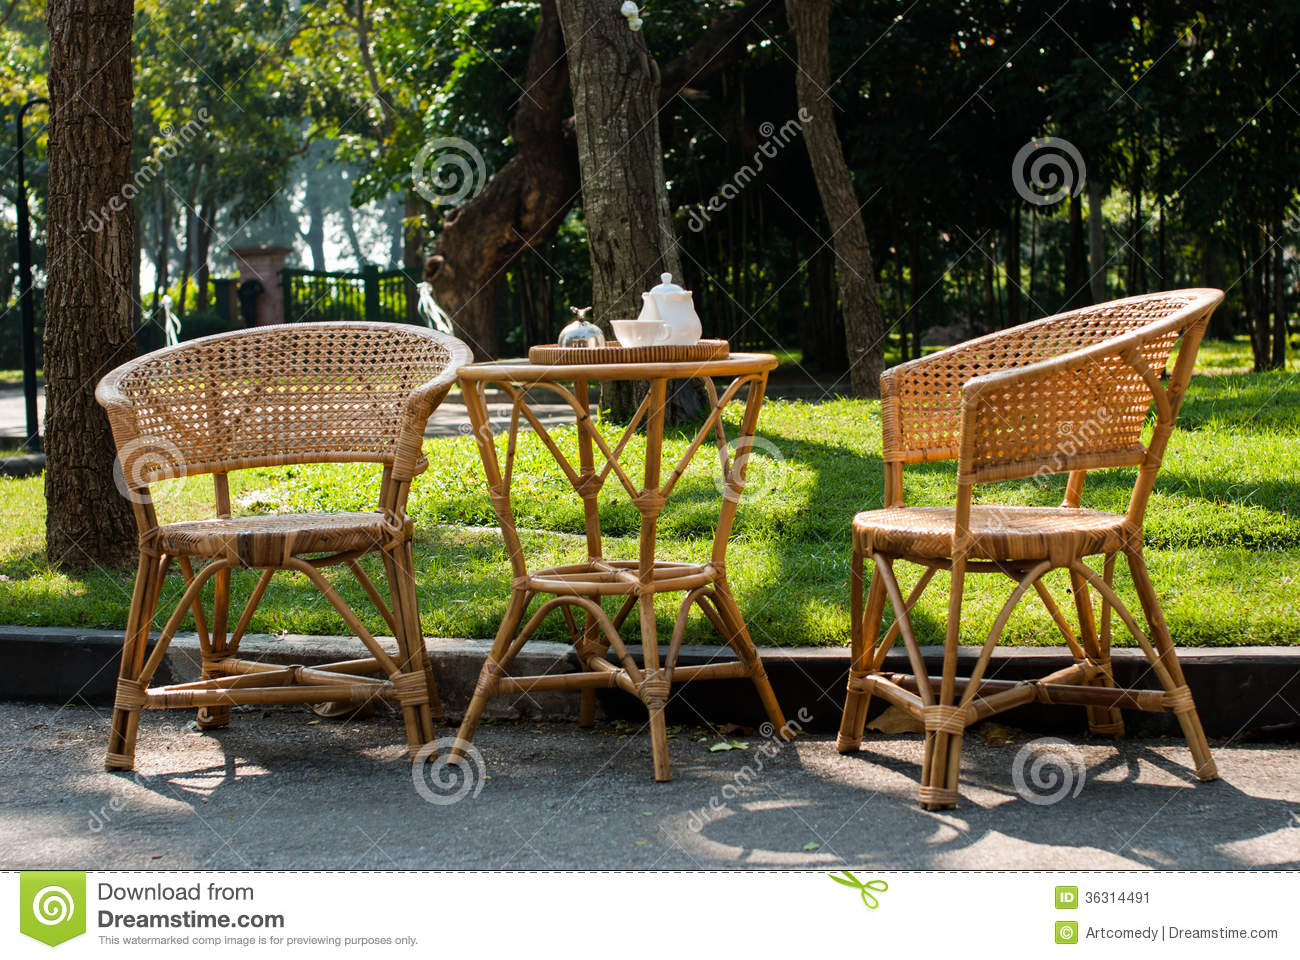 Chaises en osier et table avec le service th image for Table et chaise en osier